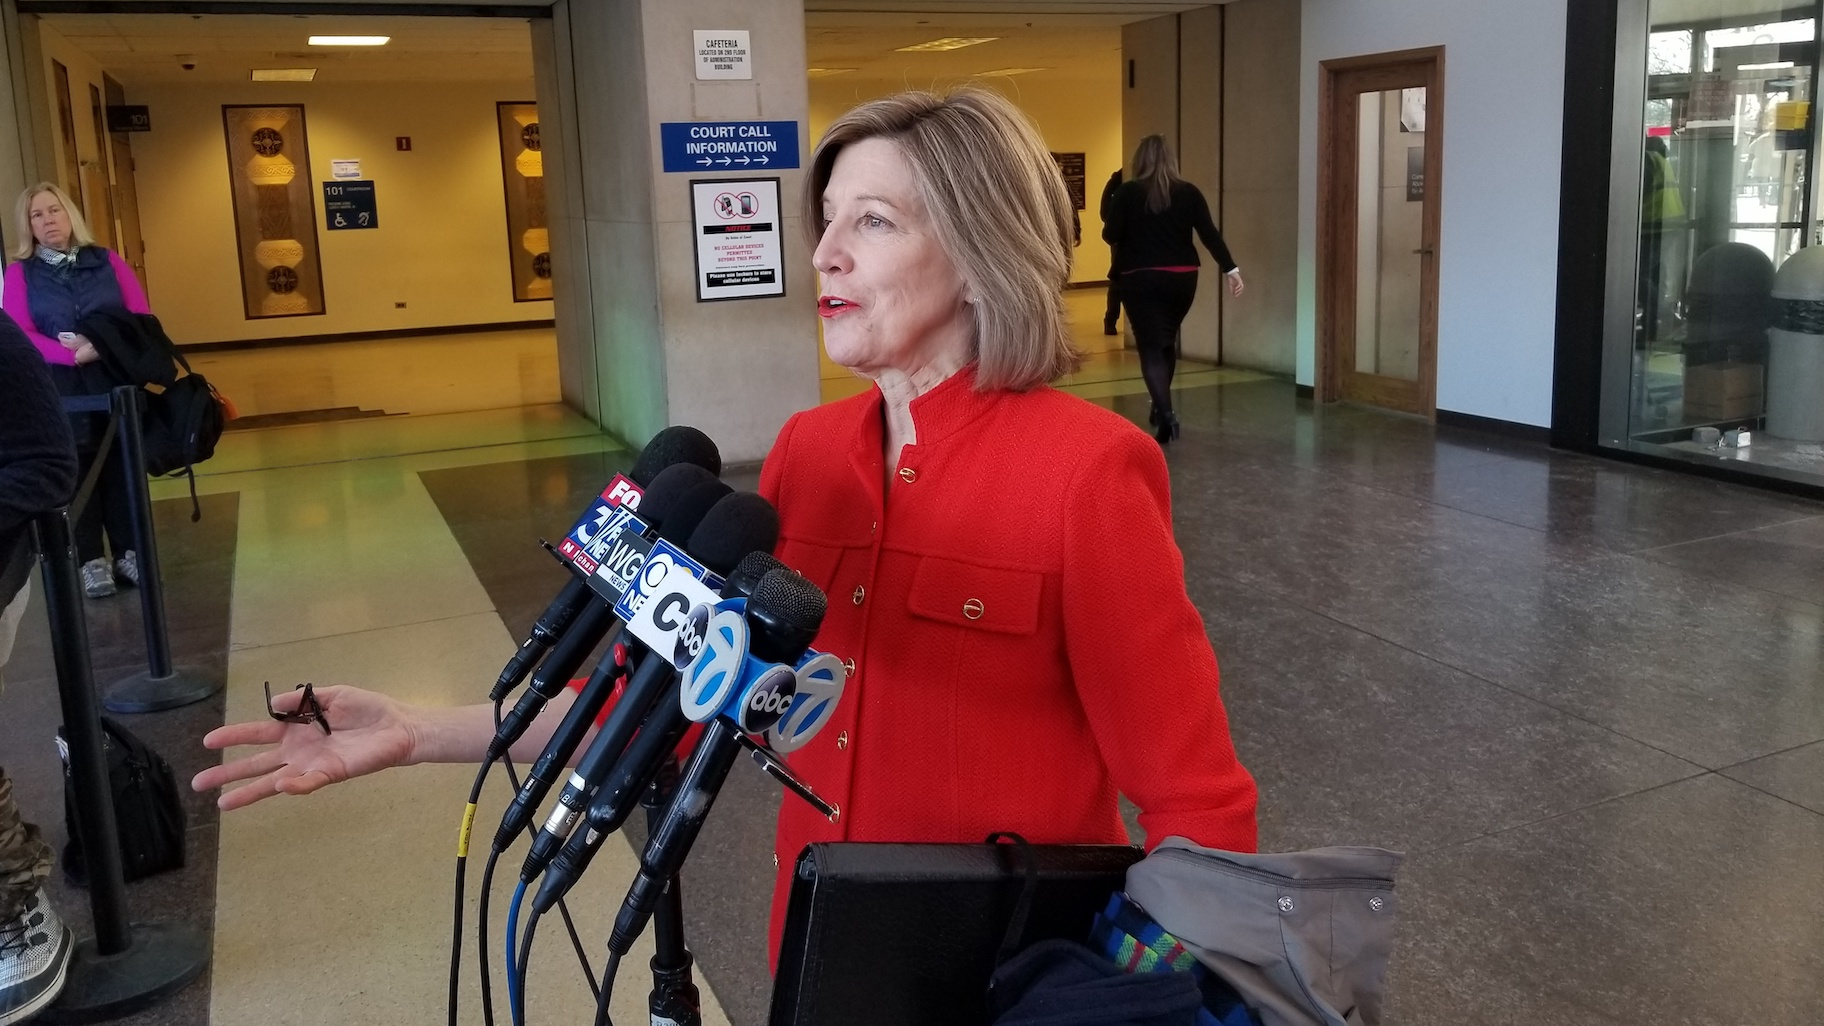 Retired appellate Judge Sheila O'Brien speaks to reporters inside the Leighton Criminal Court Building on Feb. 14, 2020. (Matt Masterson / WTTW News)